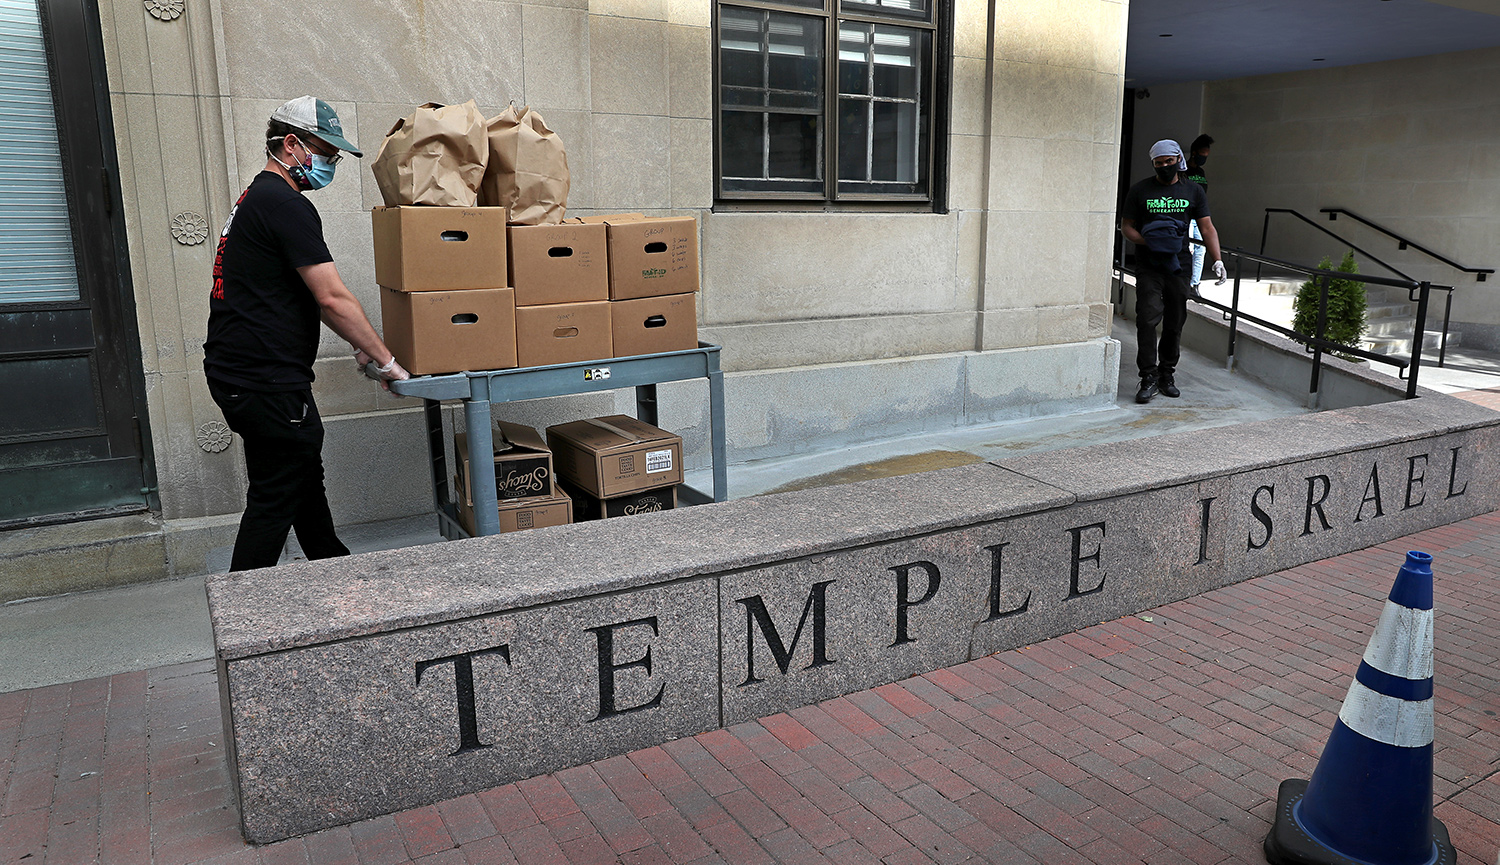 A team prepares meals at the Temple Israel synagogue kitchen in Boston on Sept. 1, 2020. David L. Ryan/The Boston Globe via Getty Images.